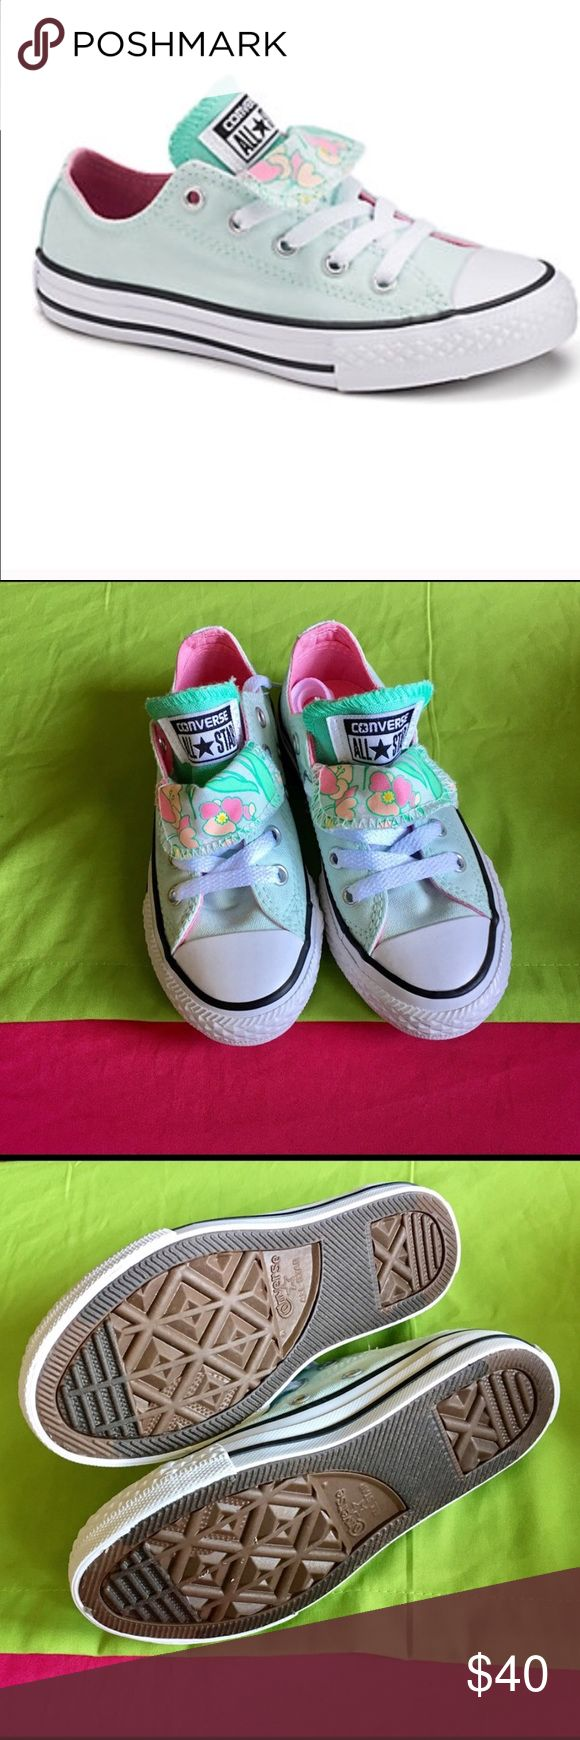 "All-Star converse for girls!! Converse Chuck Taylor All-star floral double tongue sneakers, size girls 11, color mint, pink and orange ""brand new"" Converse Shoes Sneakers"